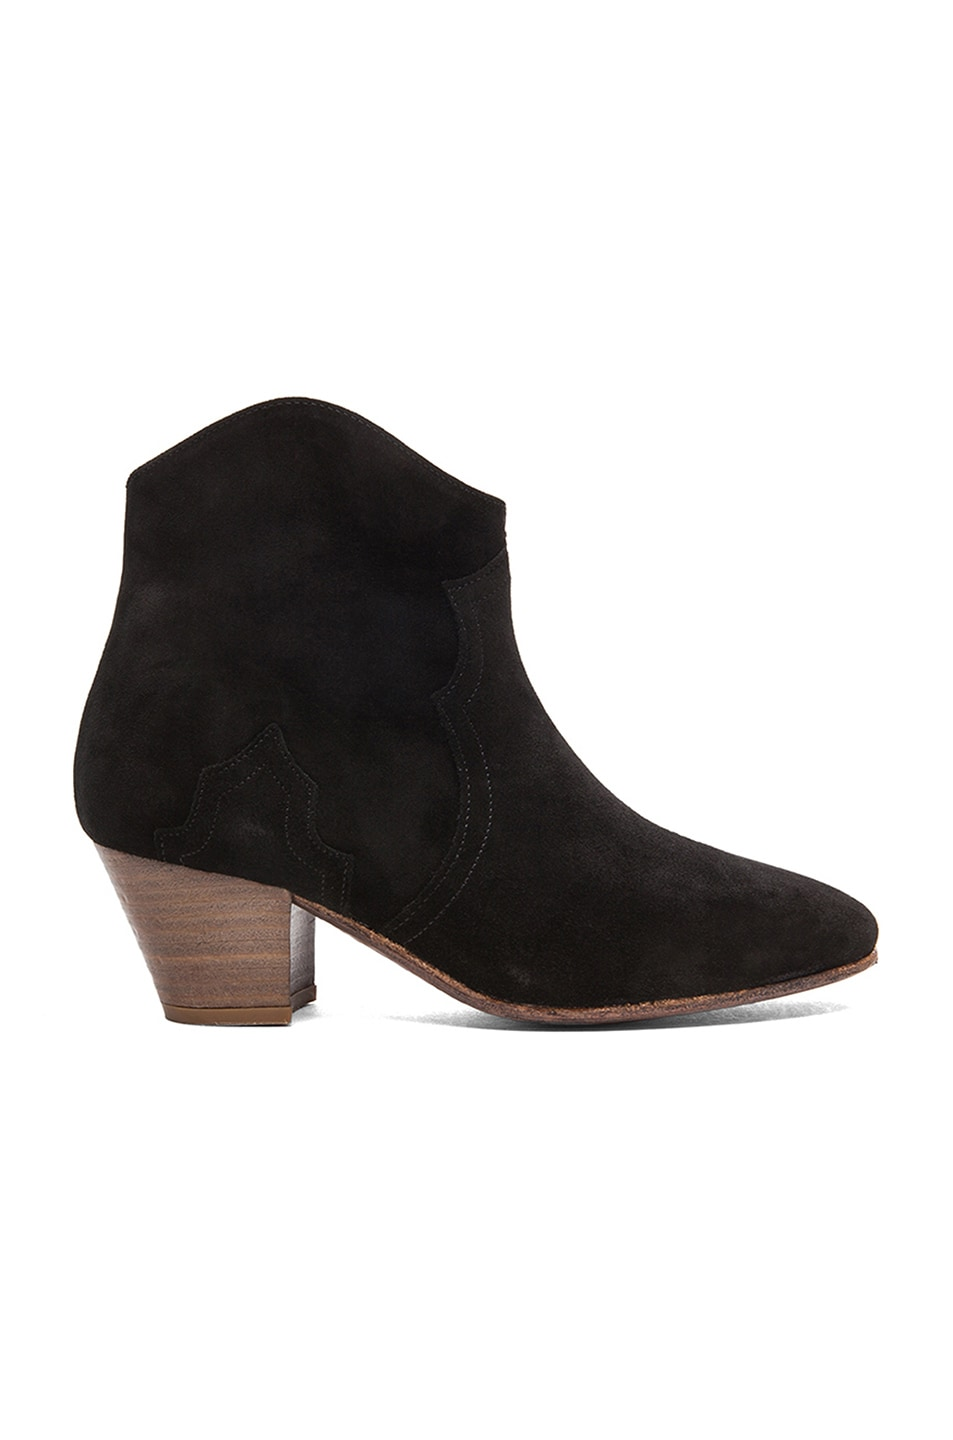 Image 1 of Isabel Marant Dicker Calfskin Velvet Leather Boots in Black